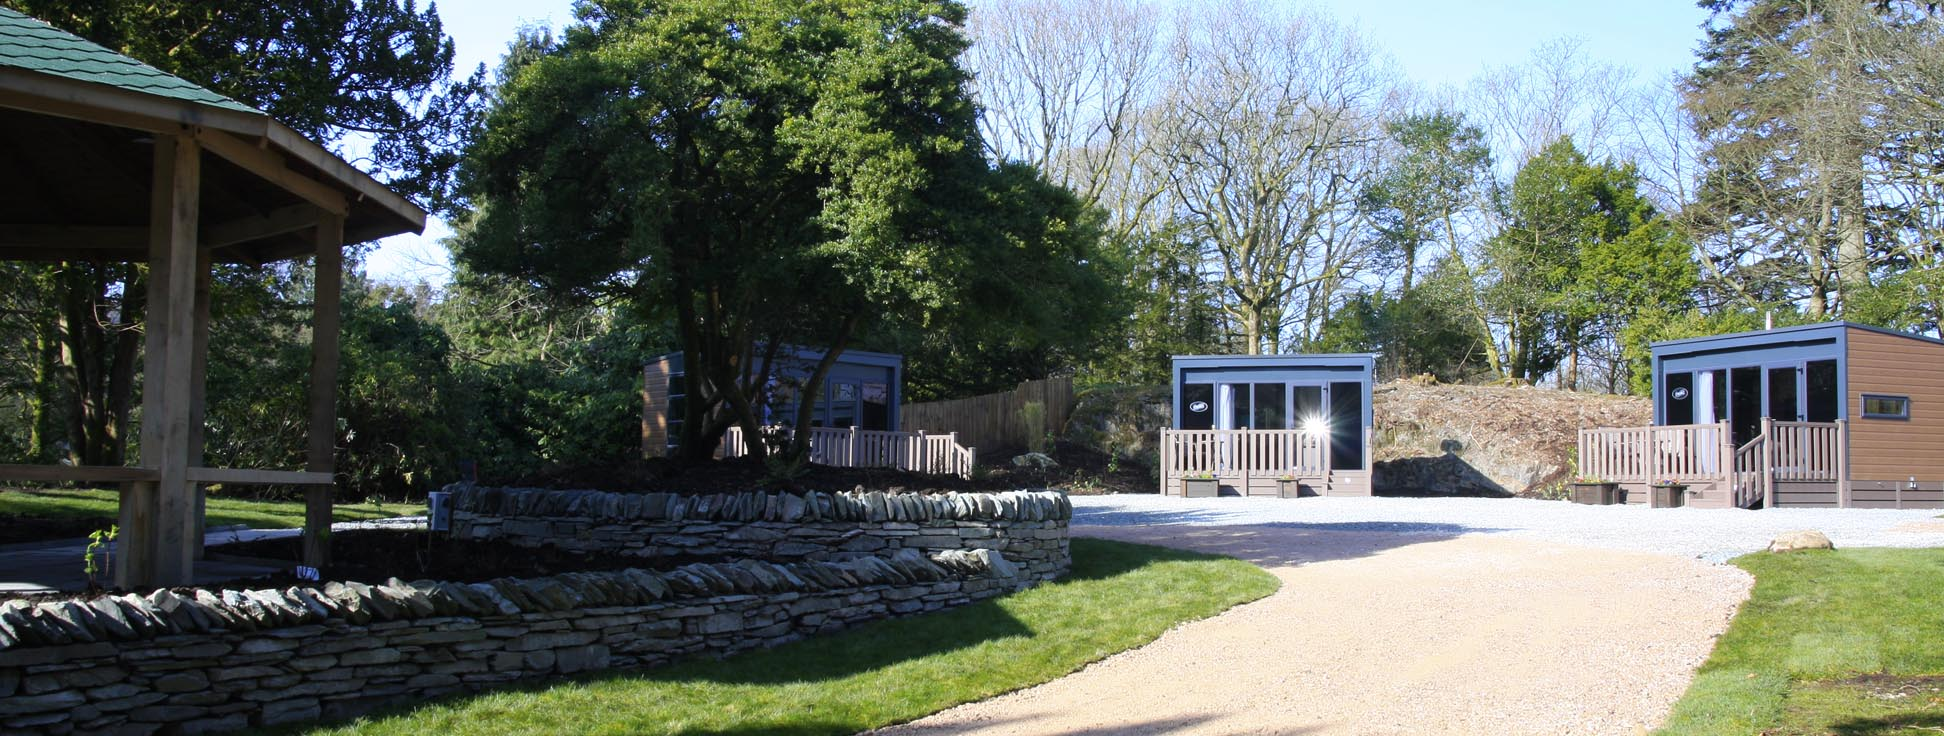 Skelwith Hideaway glamping pod